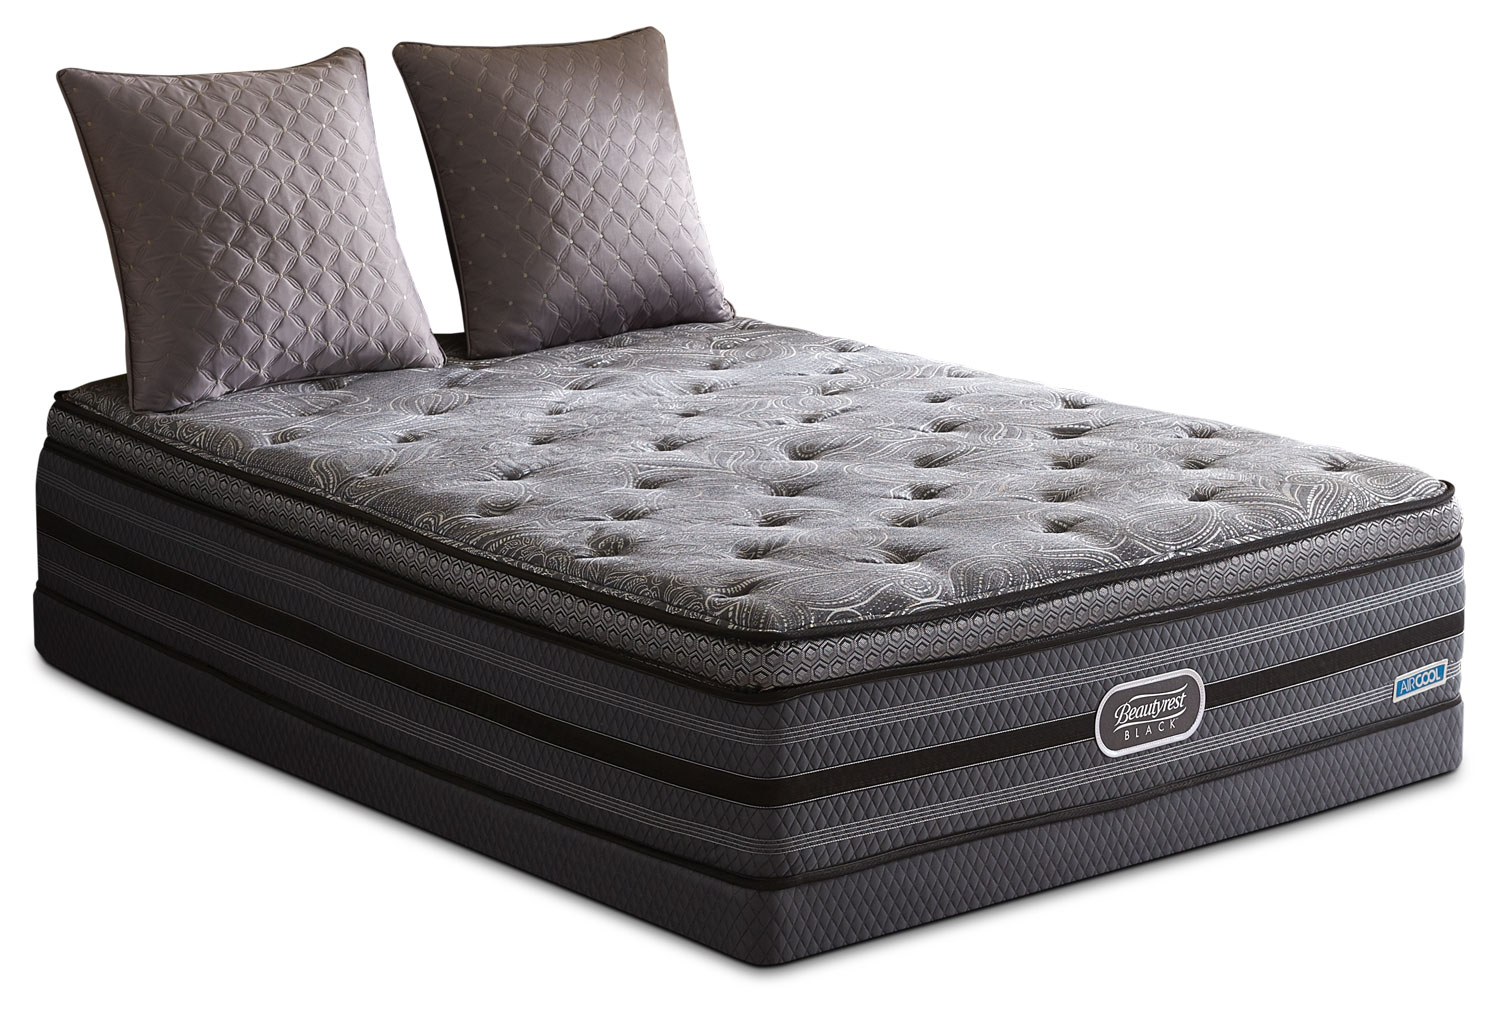 vantage black prices available clearance is queen reg only kate march for stop firm model price beautyrest this mattress plush pillowtop size also floor sale